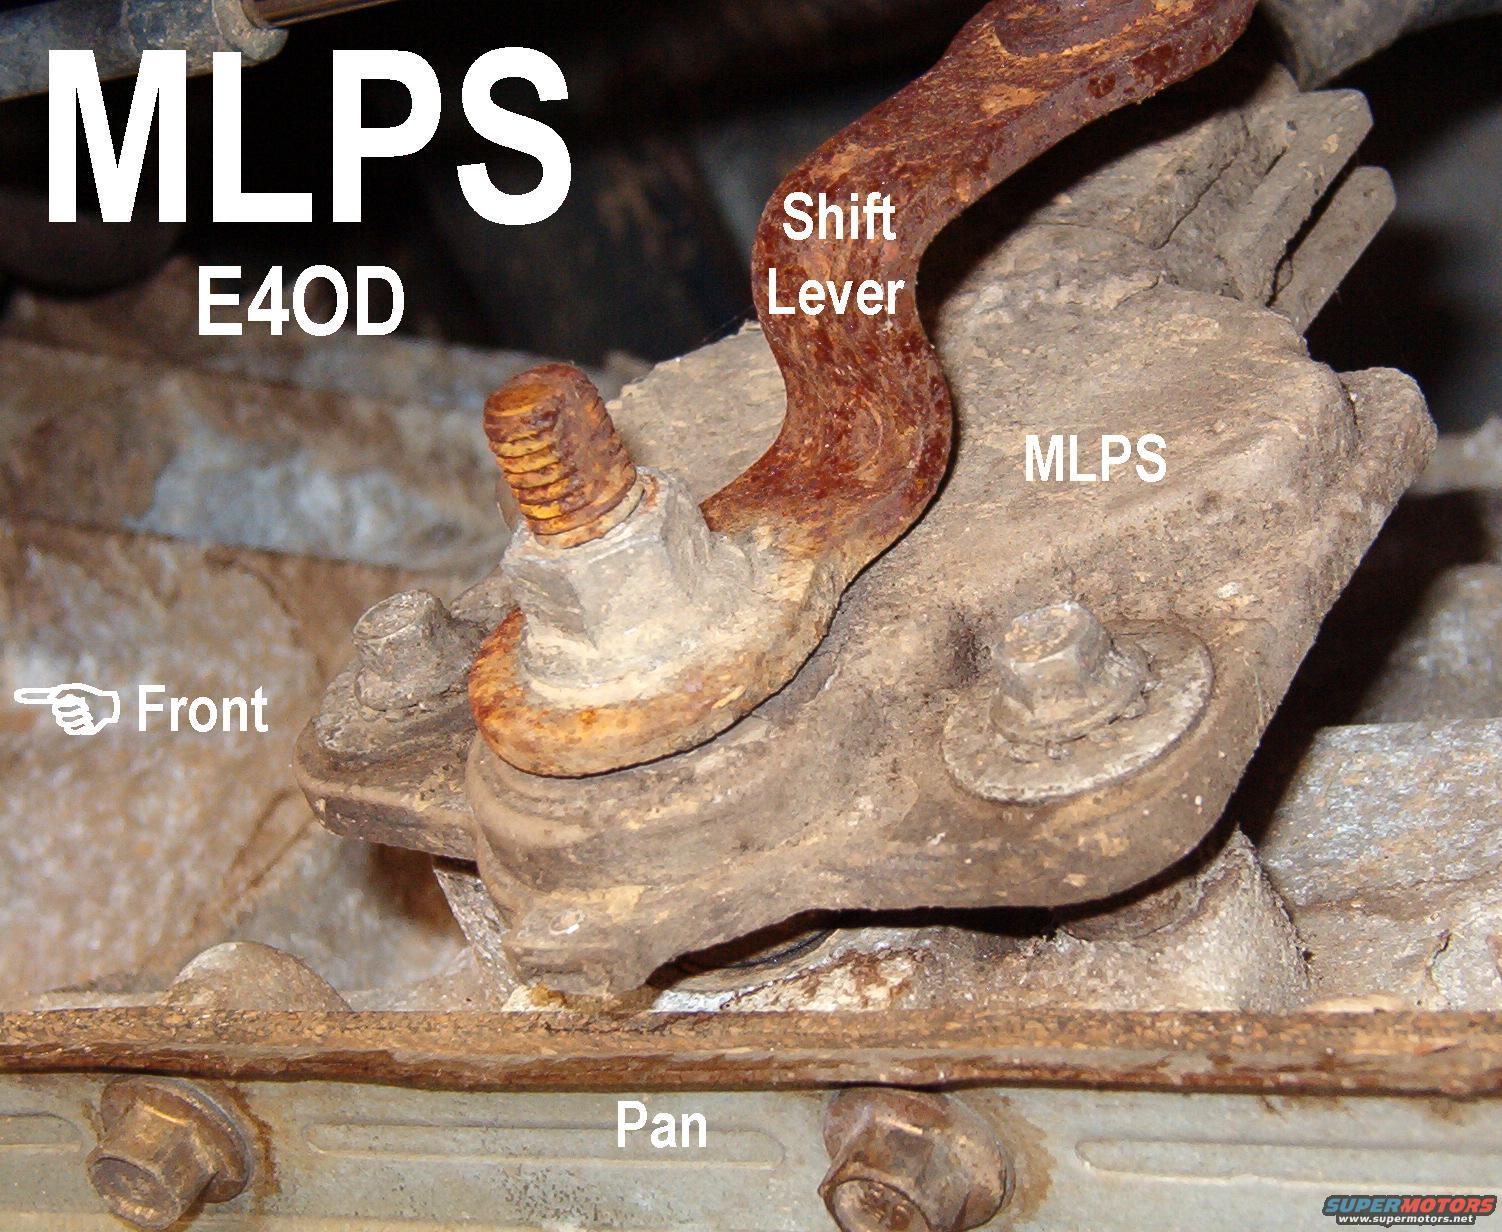 Mlp Sensor Ford E4od Mlps Wiring Diagram Bronco General Purpose Pics Picture 1502x1232